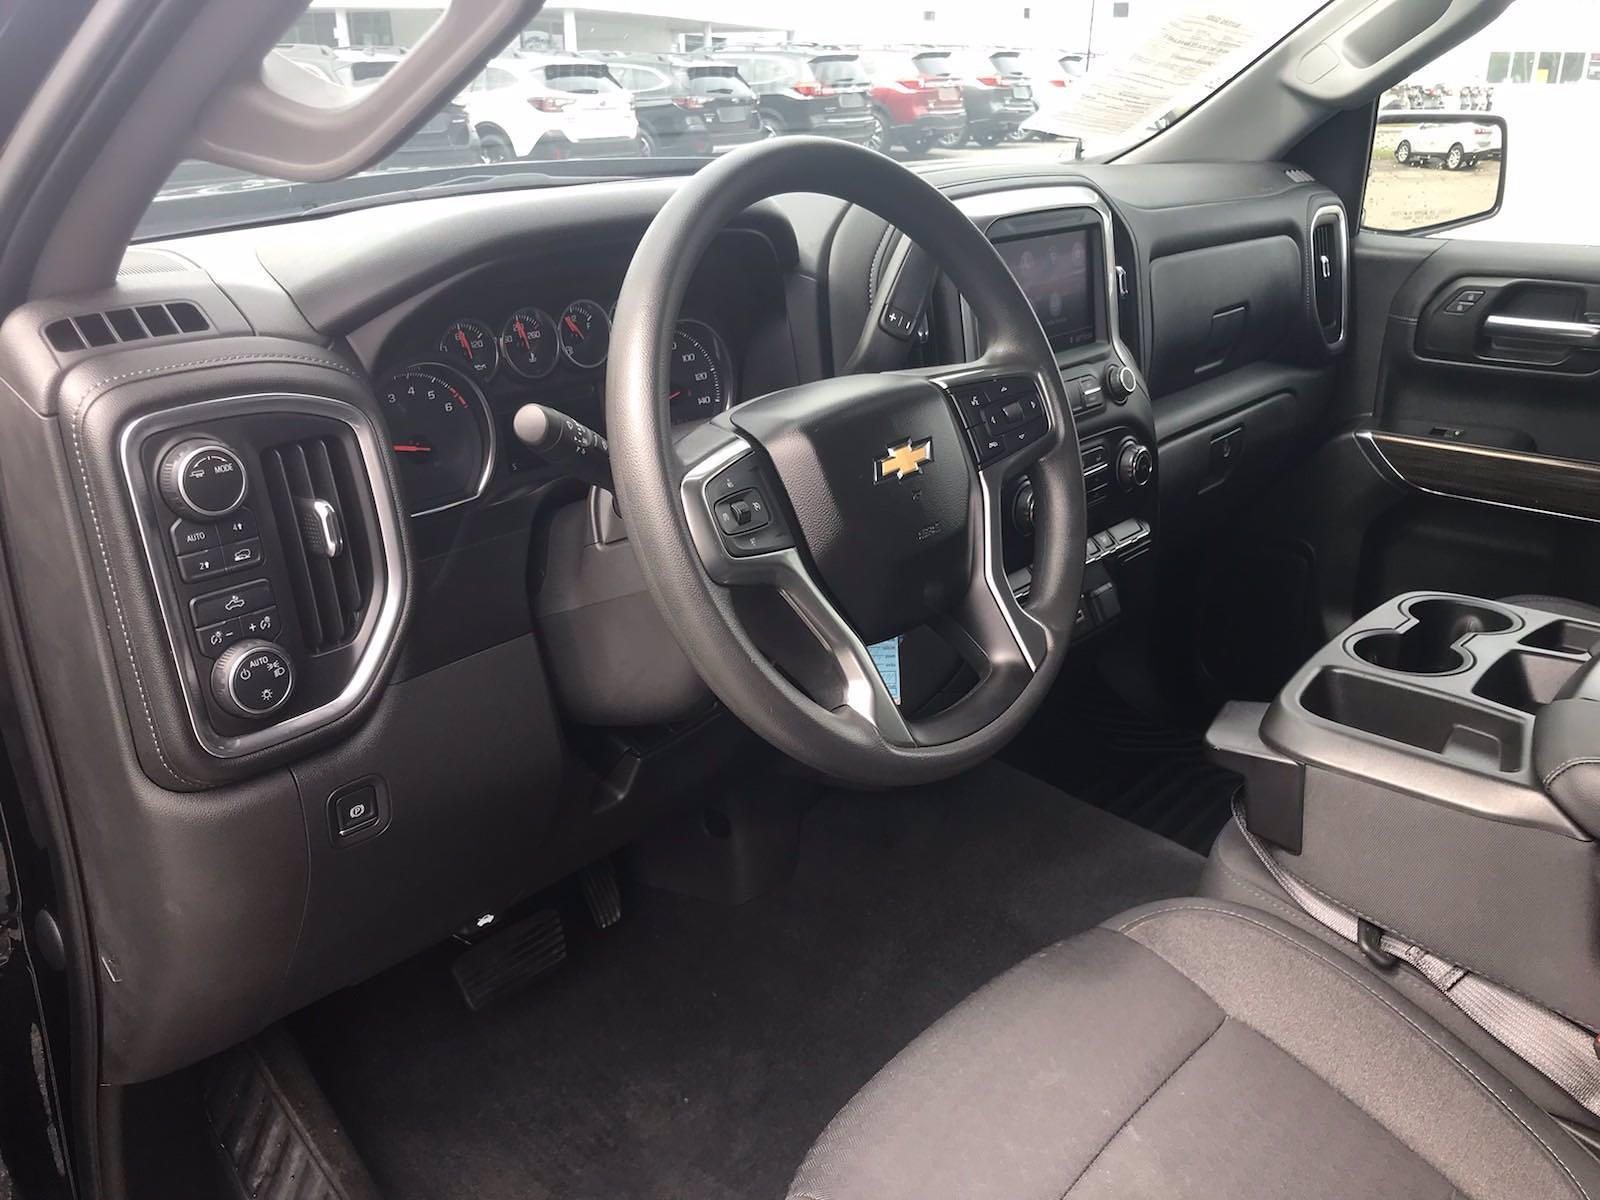 2020 Chevrolet Silverado 1500 Crew Cab 4x4, Pickup #16458PN - photo 26